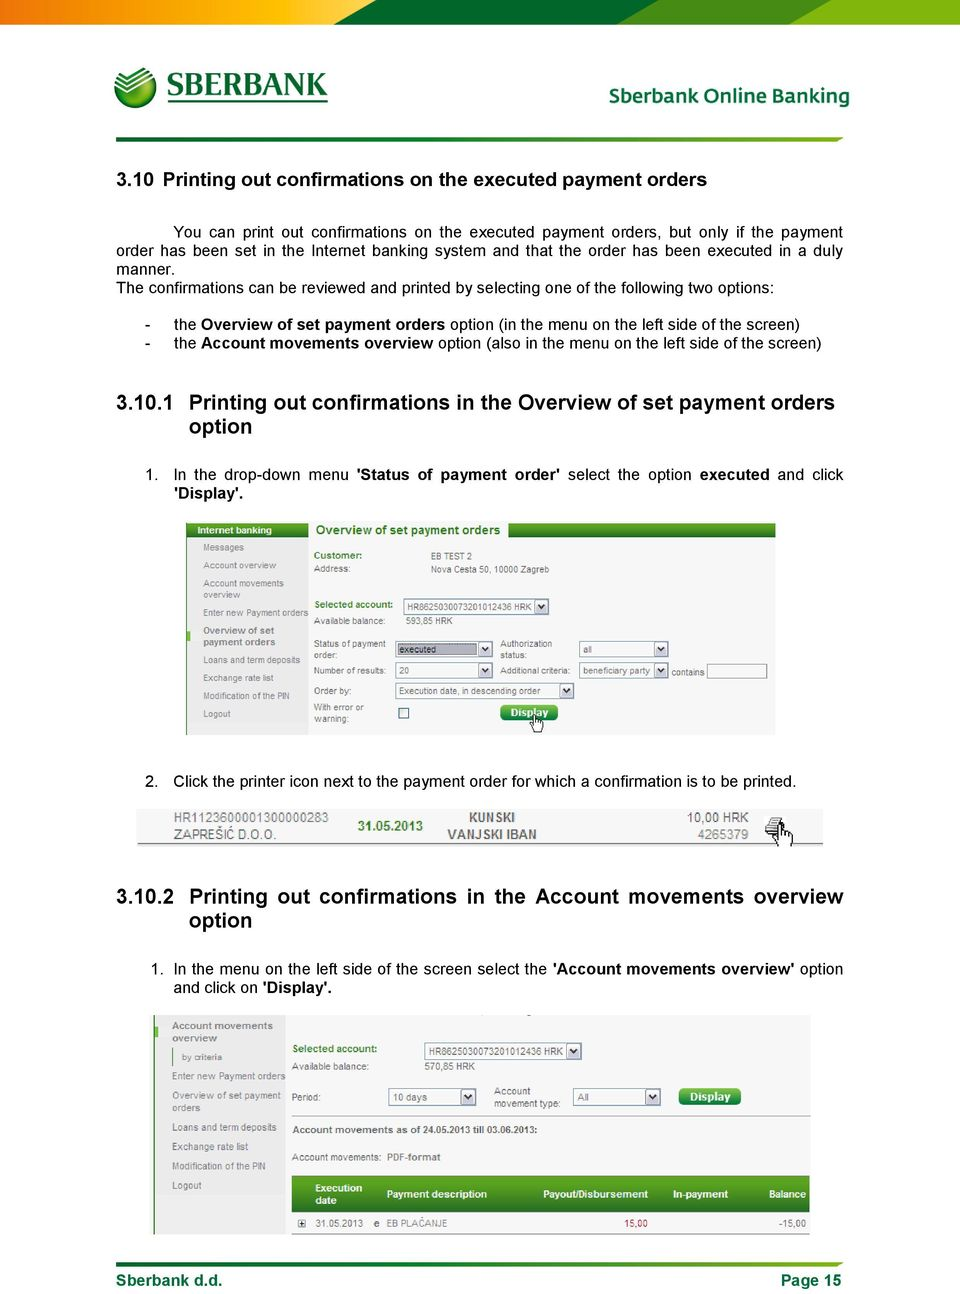 The confirmations can be reviewed and printed by selecting one of the following two options: - the Overview of set payment orders option (in the menu on the left side of the screen) - the Account